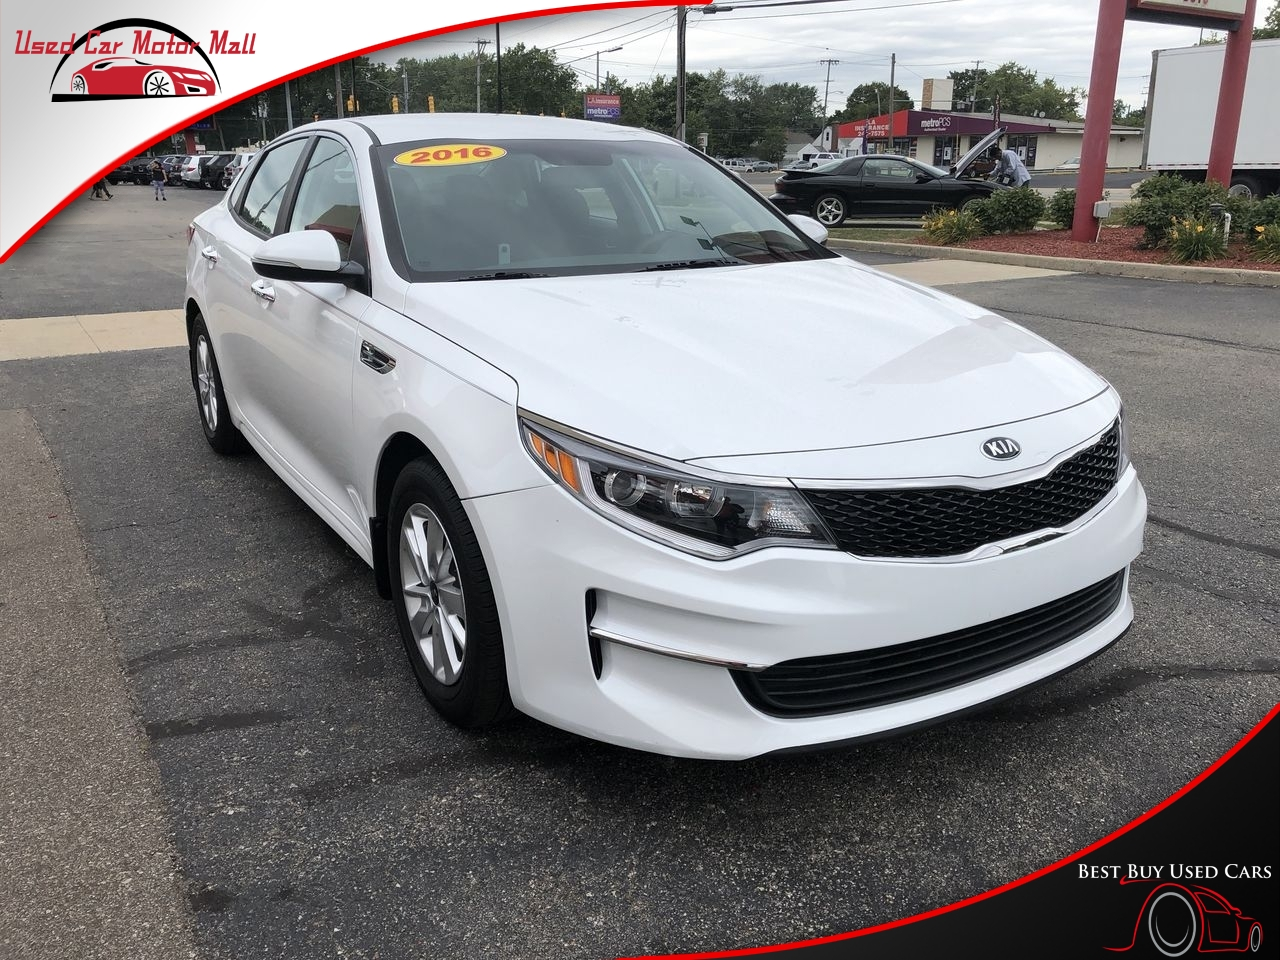 2016 Kia Optima LX, 015562, Photo 1